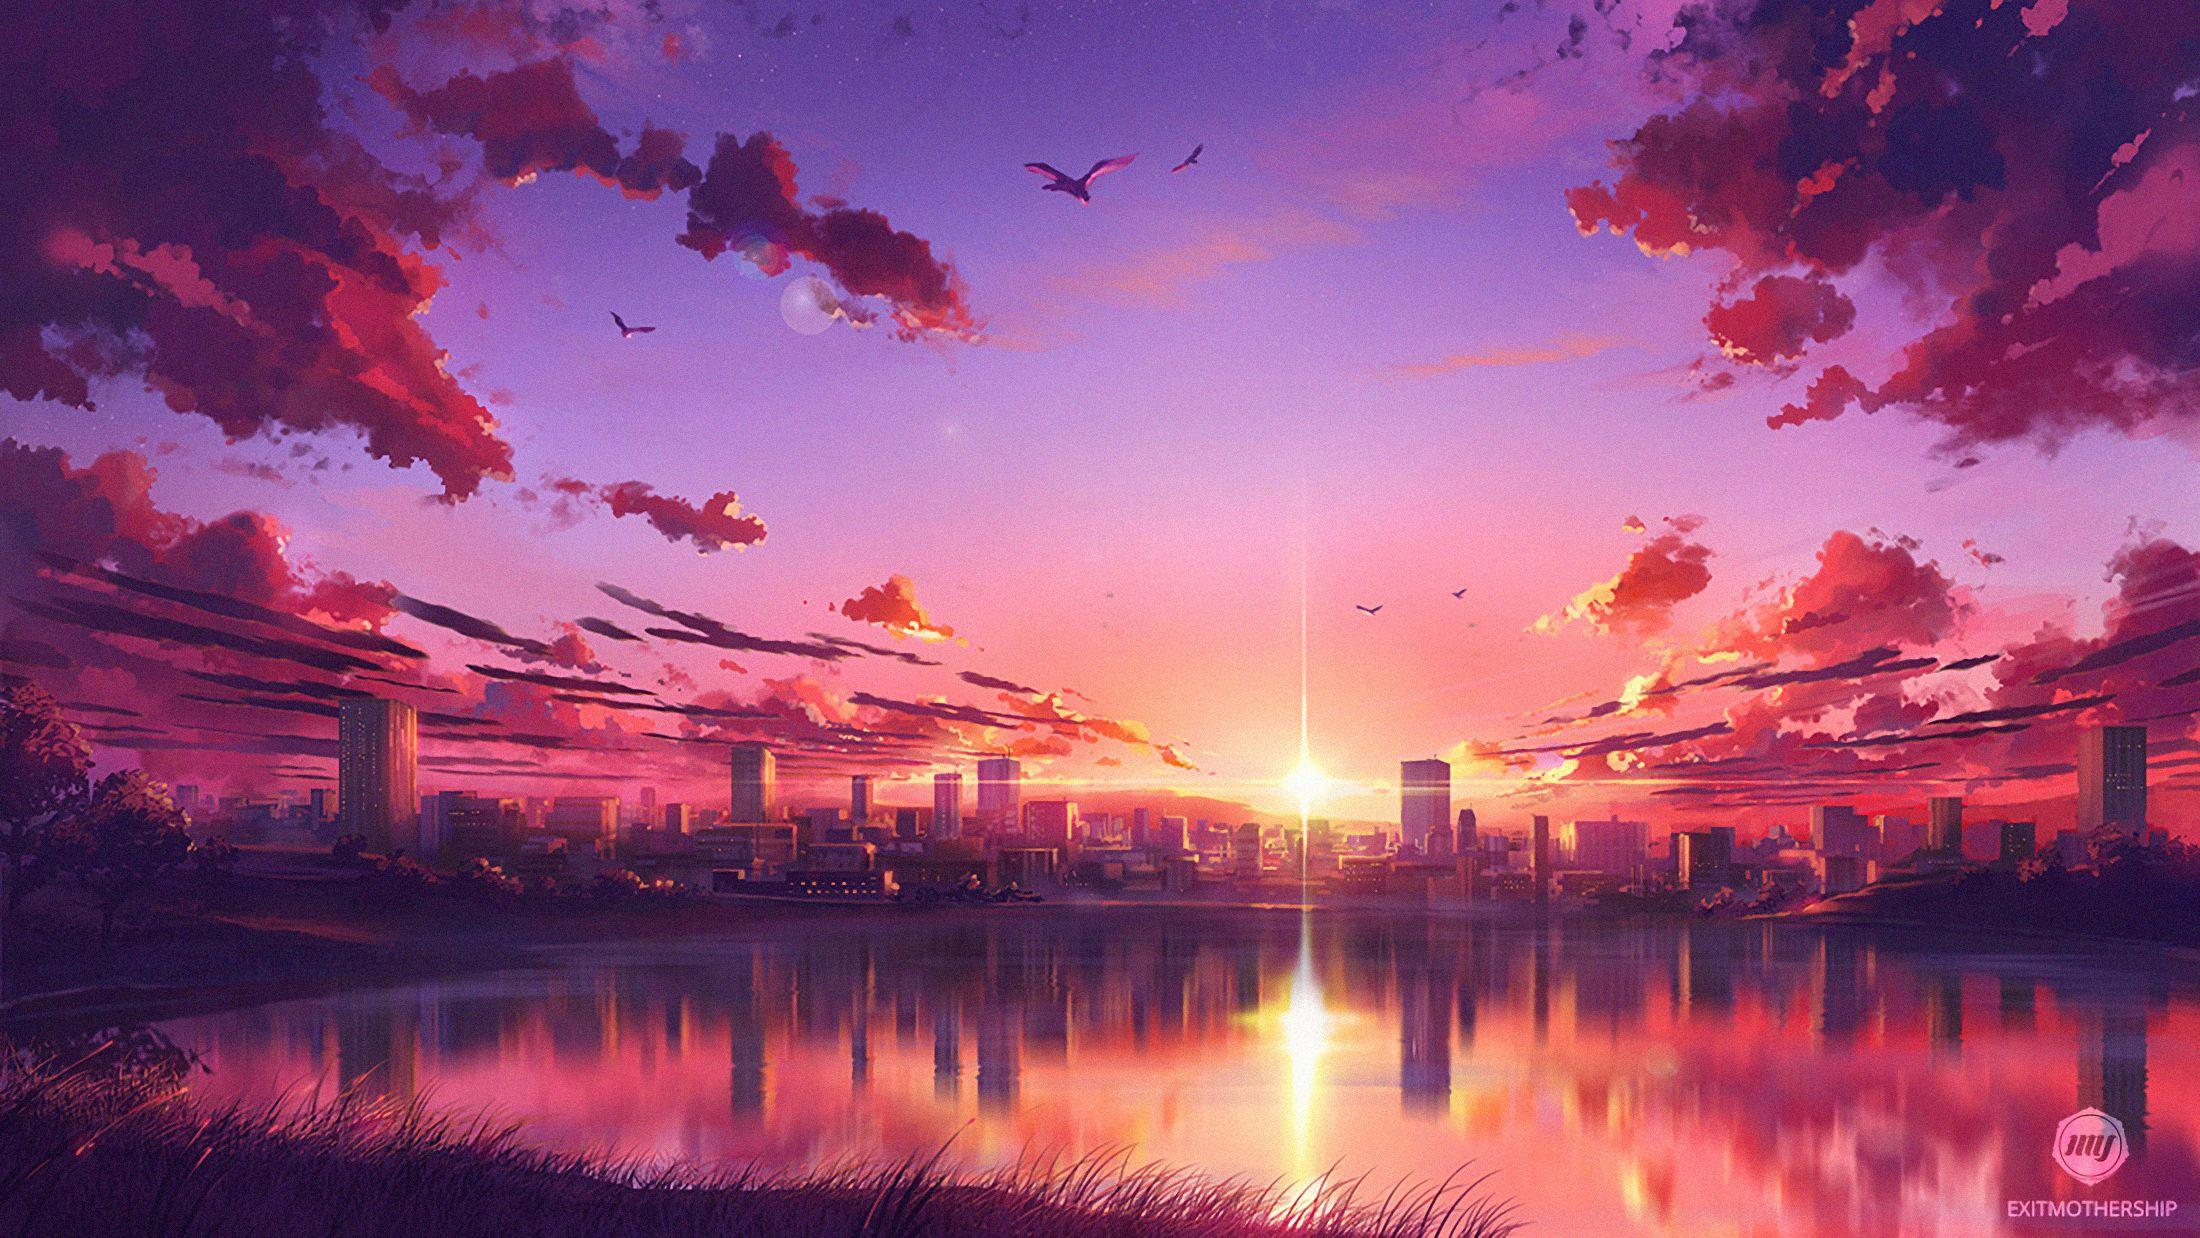 Aesthetic Anime Sunset Wallpapers Wallpaper Cave